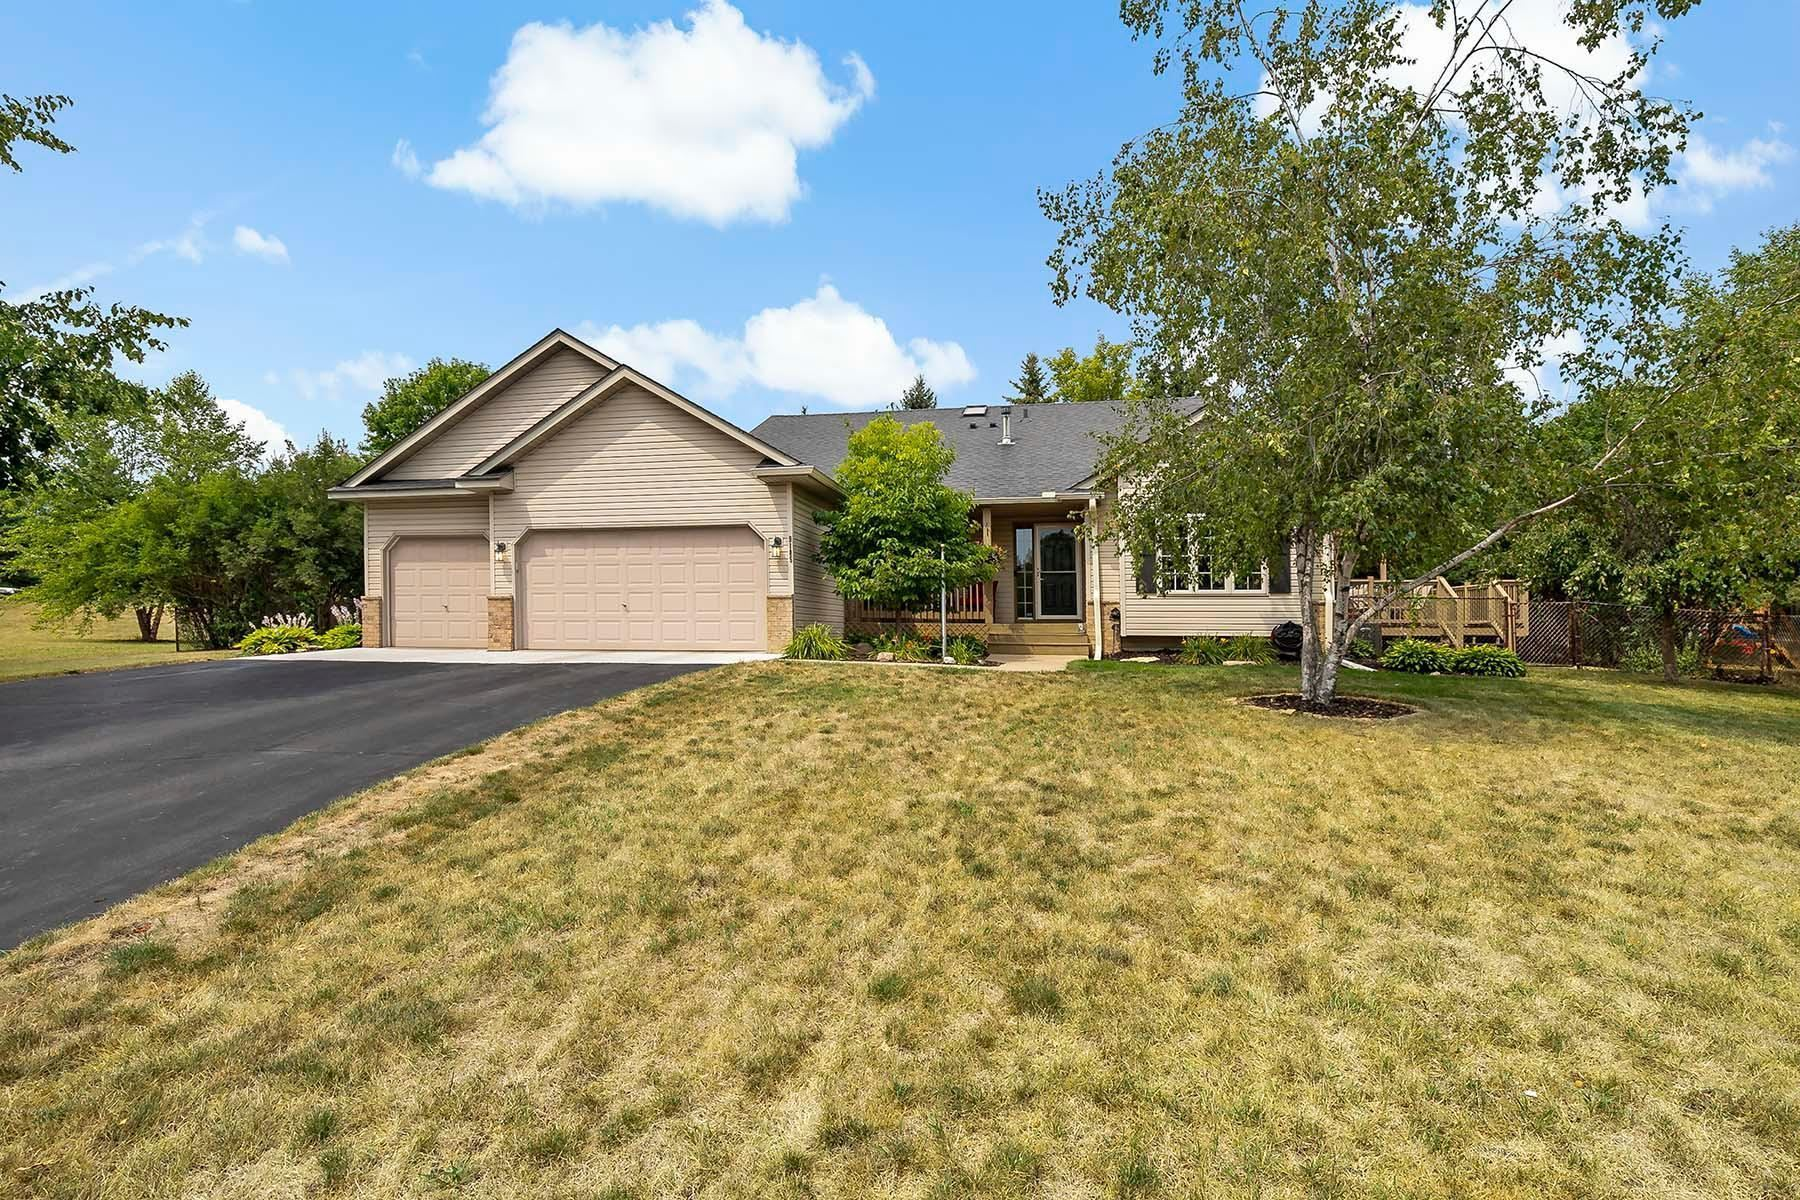 Photo of 9185 211th Street W, Lakeville, MN 55044 (MLS # 6021427)